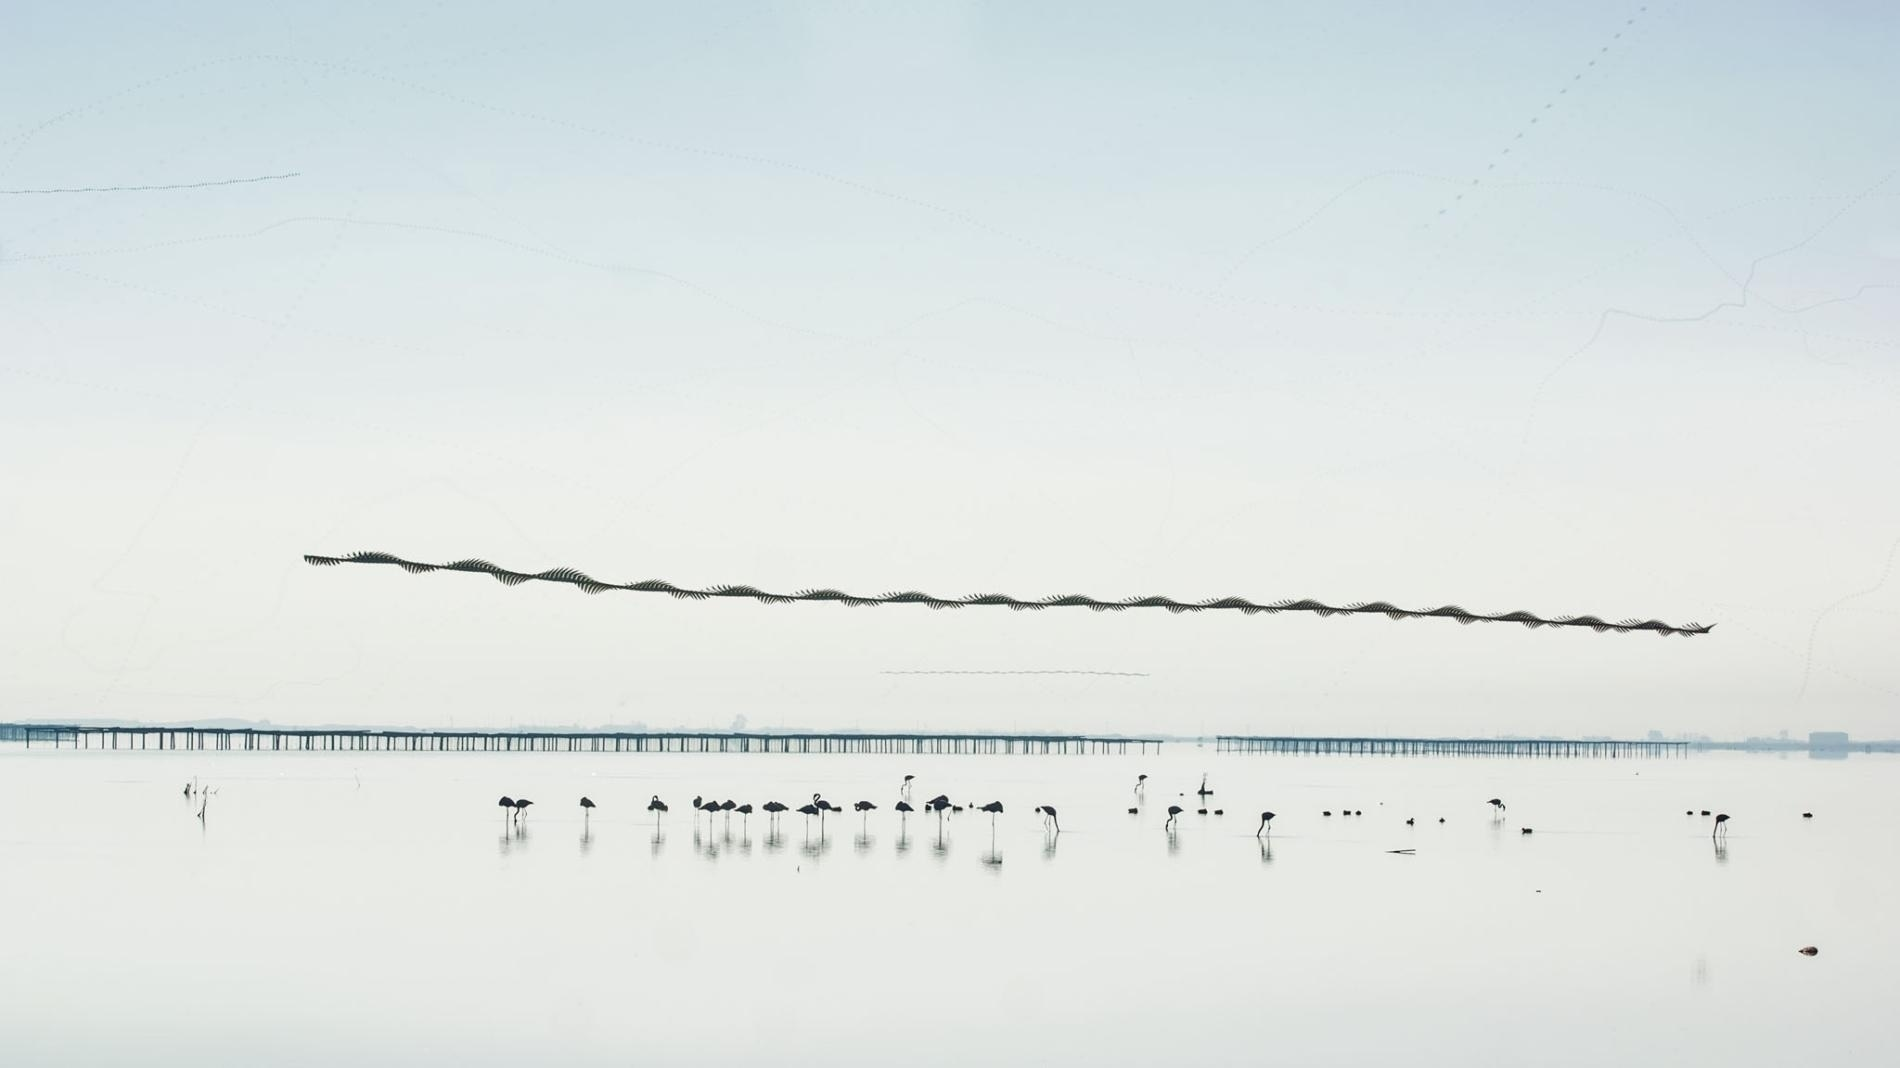 Xavi Bou captures the paths that birds make across the sky